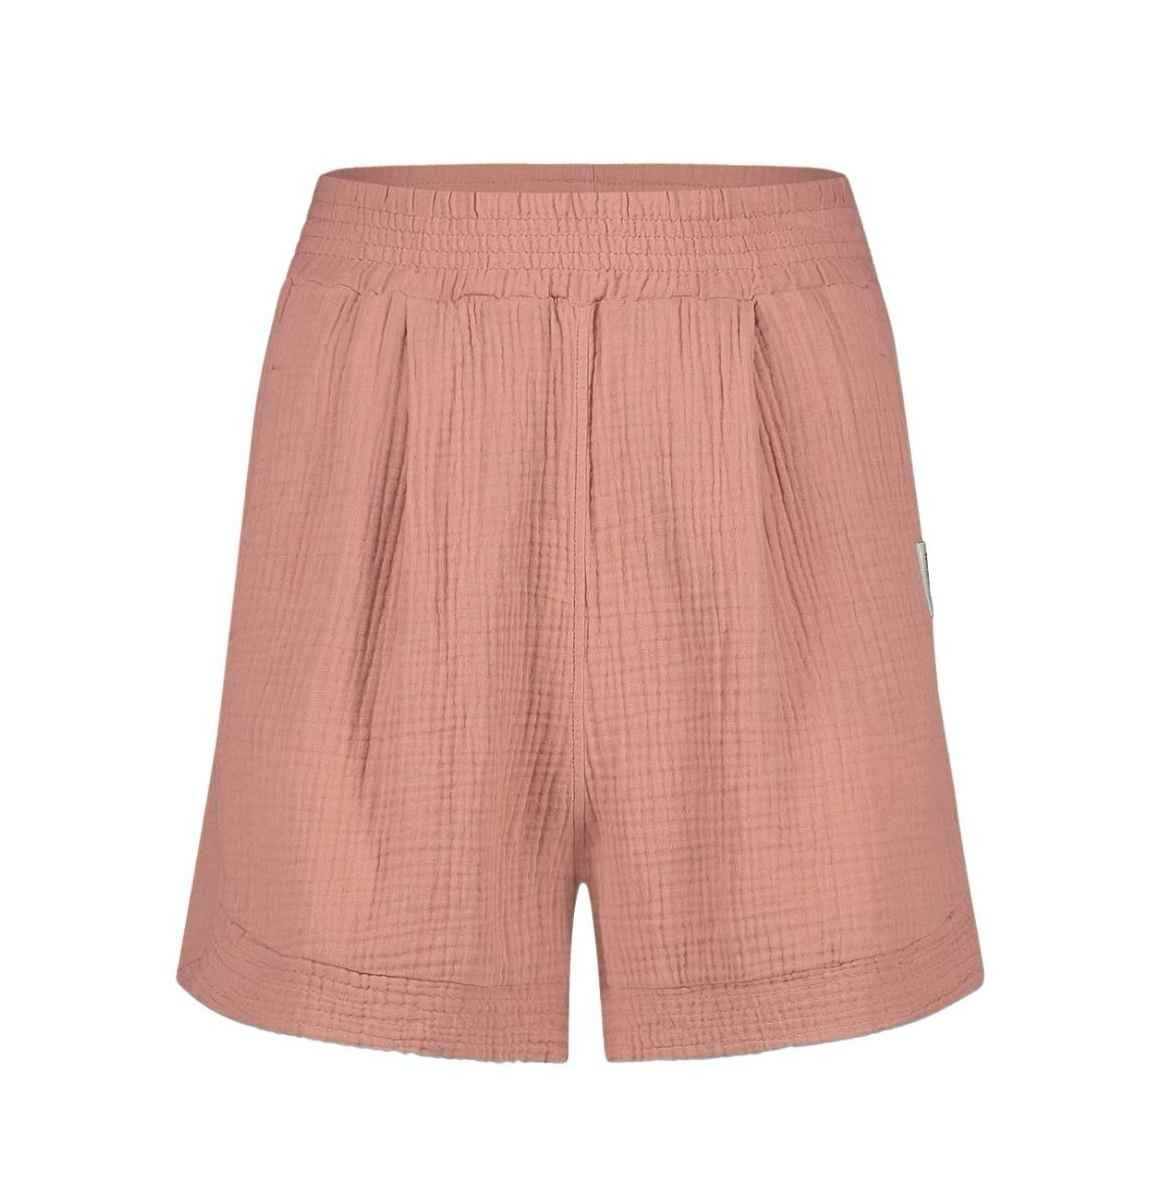 PENN&INK N.Y - Damen Shorts -Terracotta